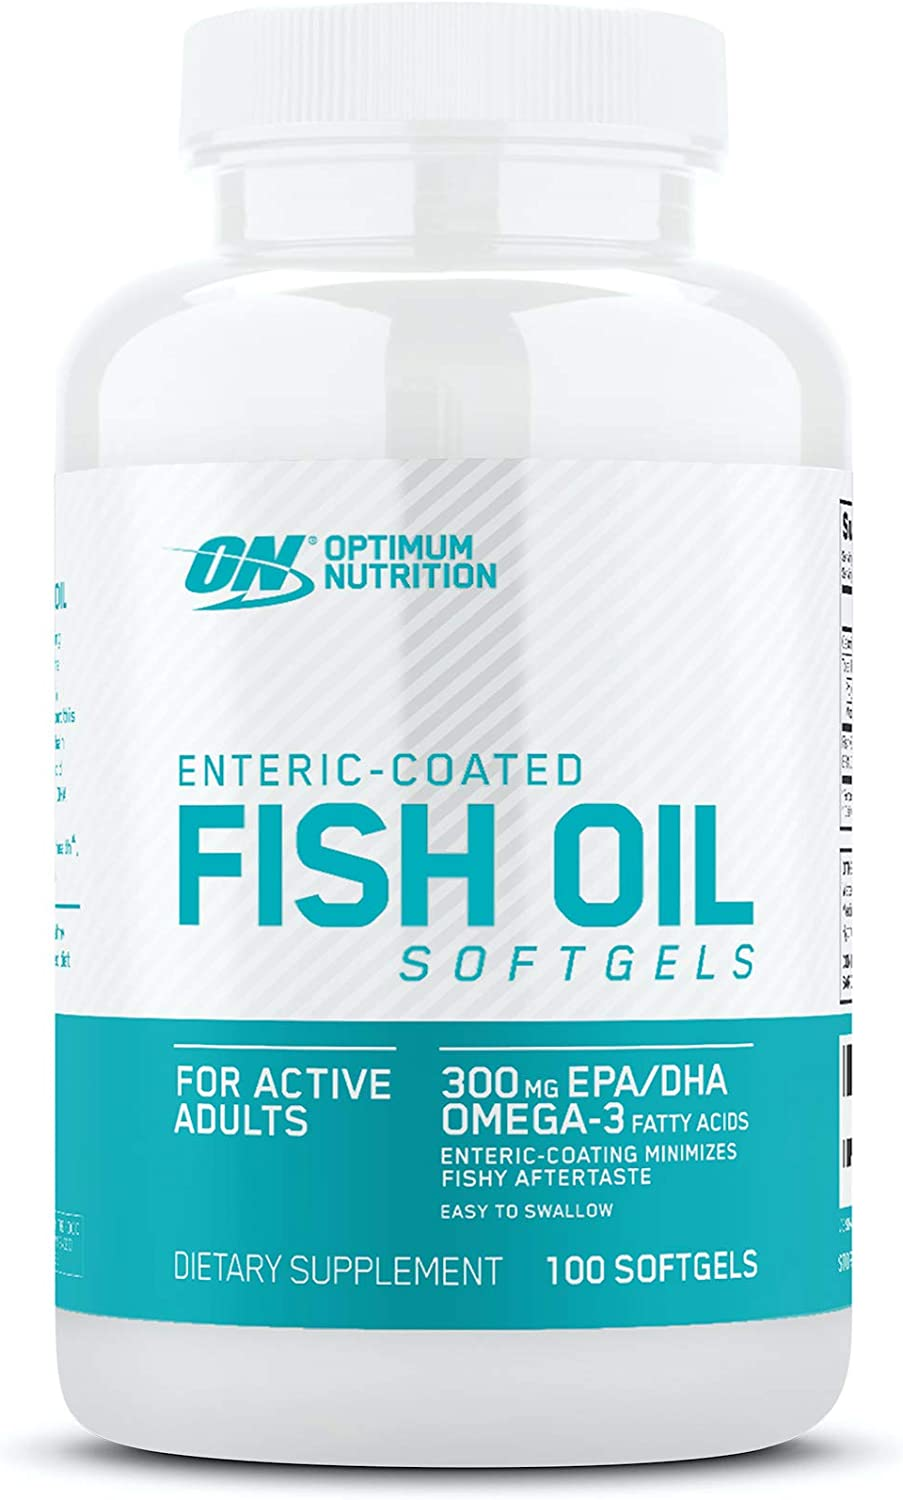 Optimum Nutrition Omega 3 Fish Oil, 300MG, Brain Support Supplement, 100 Softgels (Packaging May Vary): Health & Personal Care